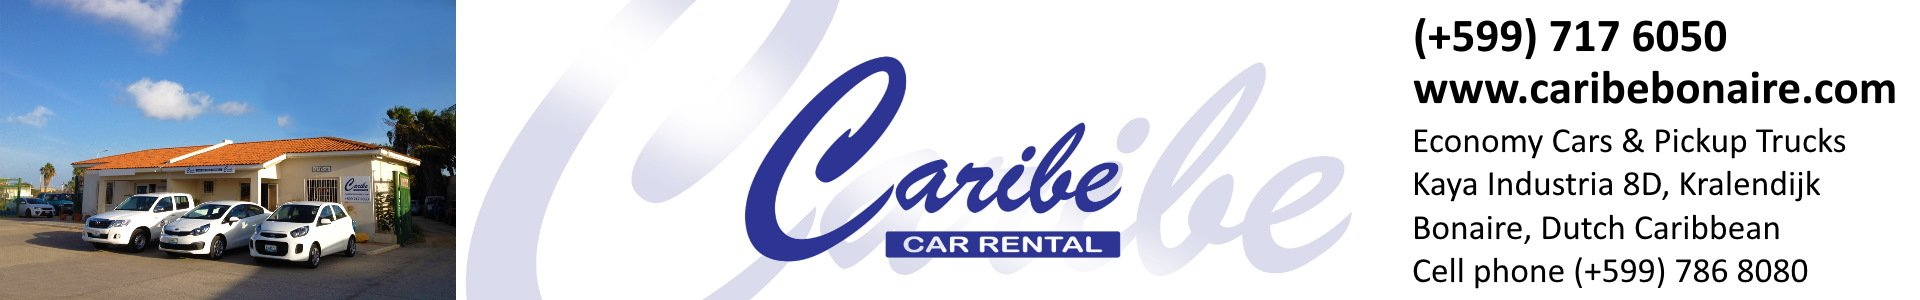 Caribe Car Rental